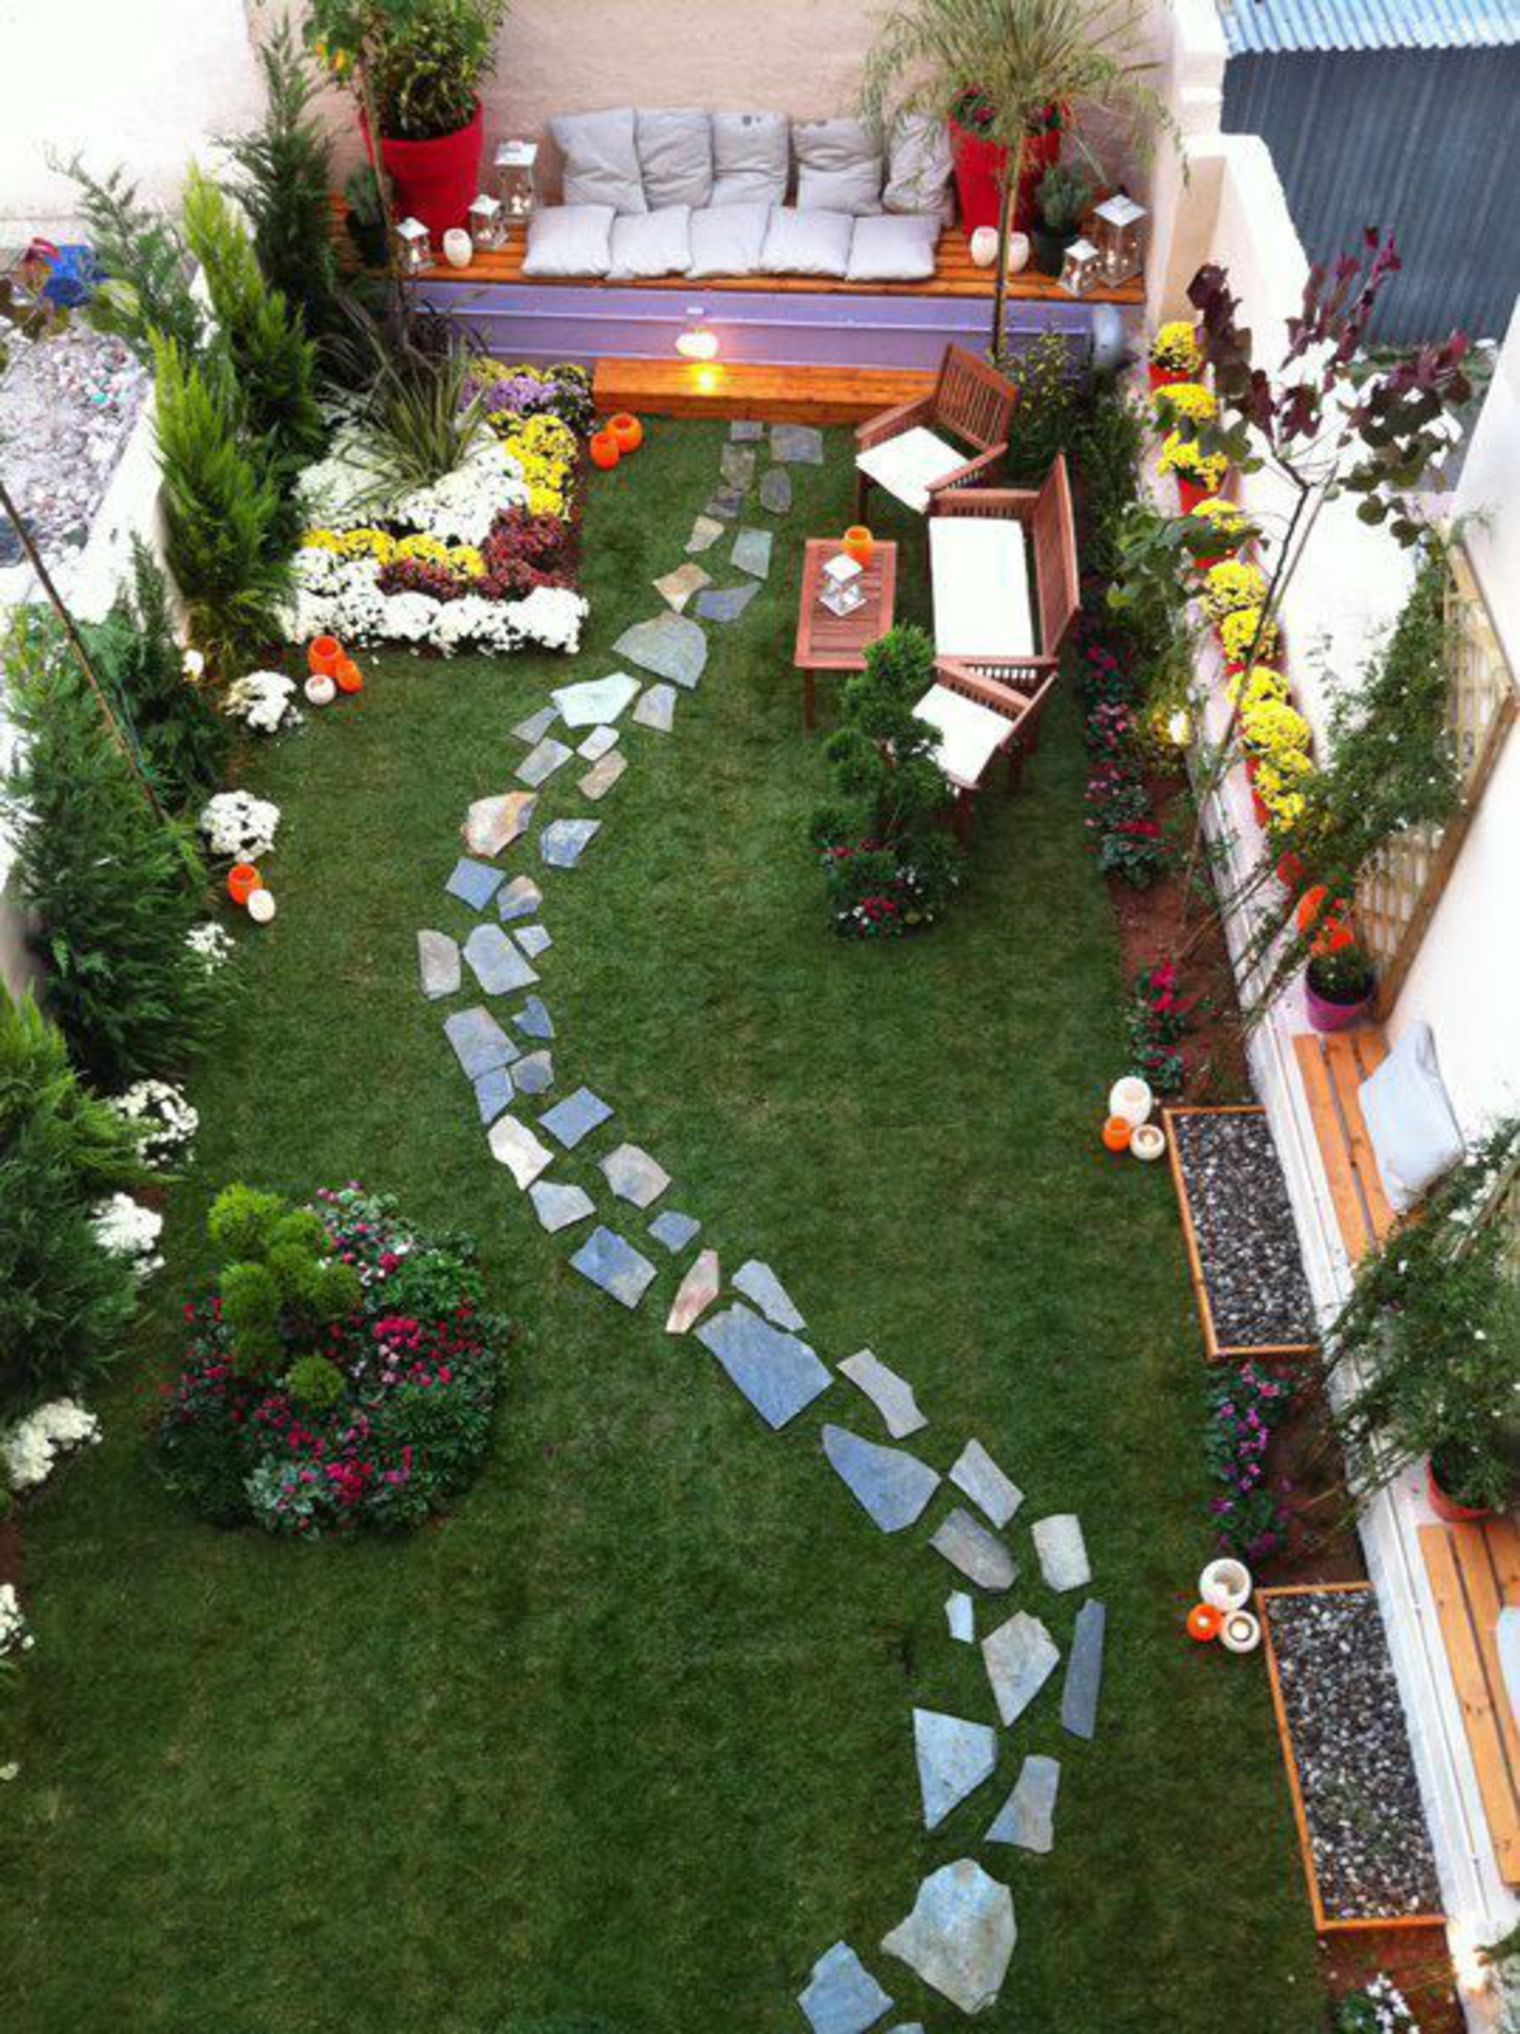 Am nagement petit jardin de ville 11 id es via pinterest for Amenagement petits jardins